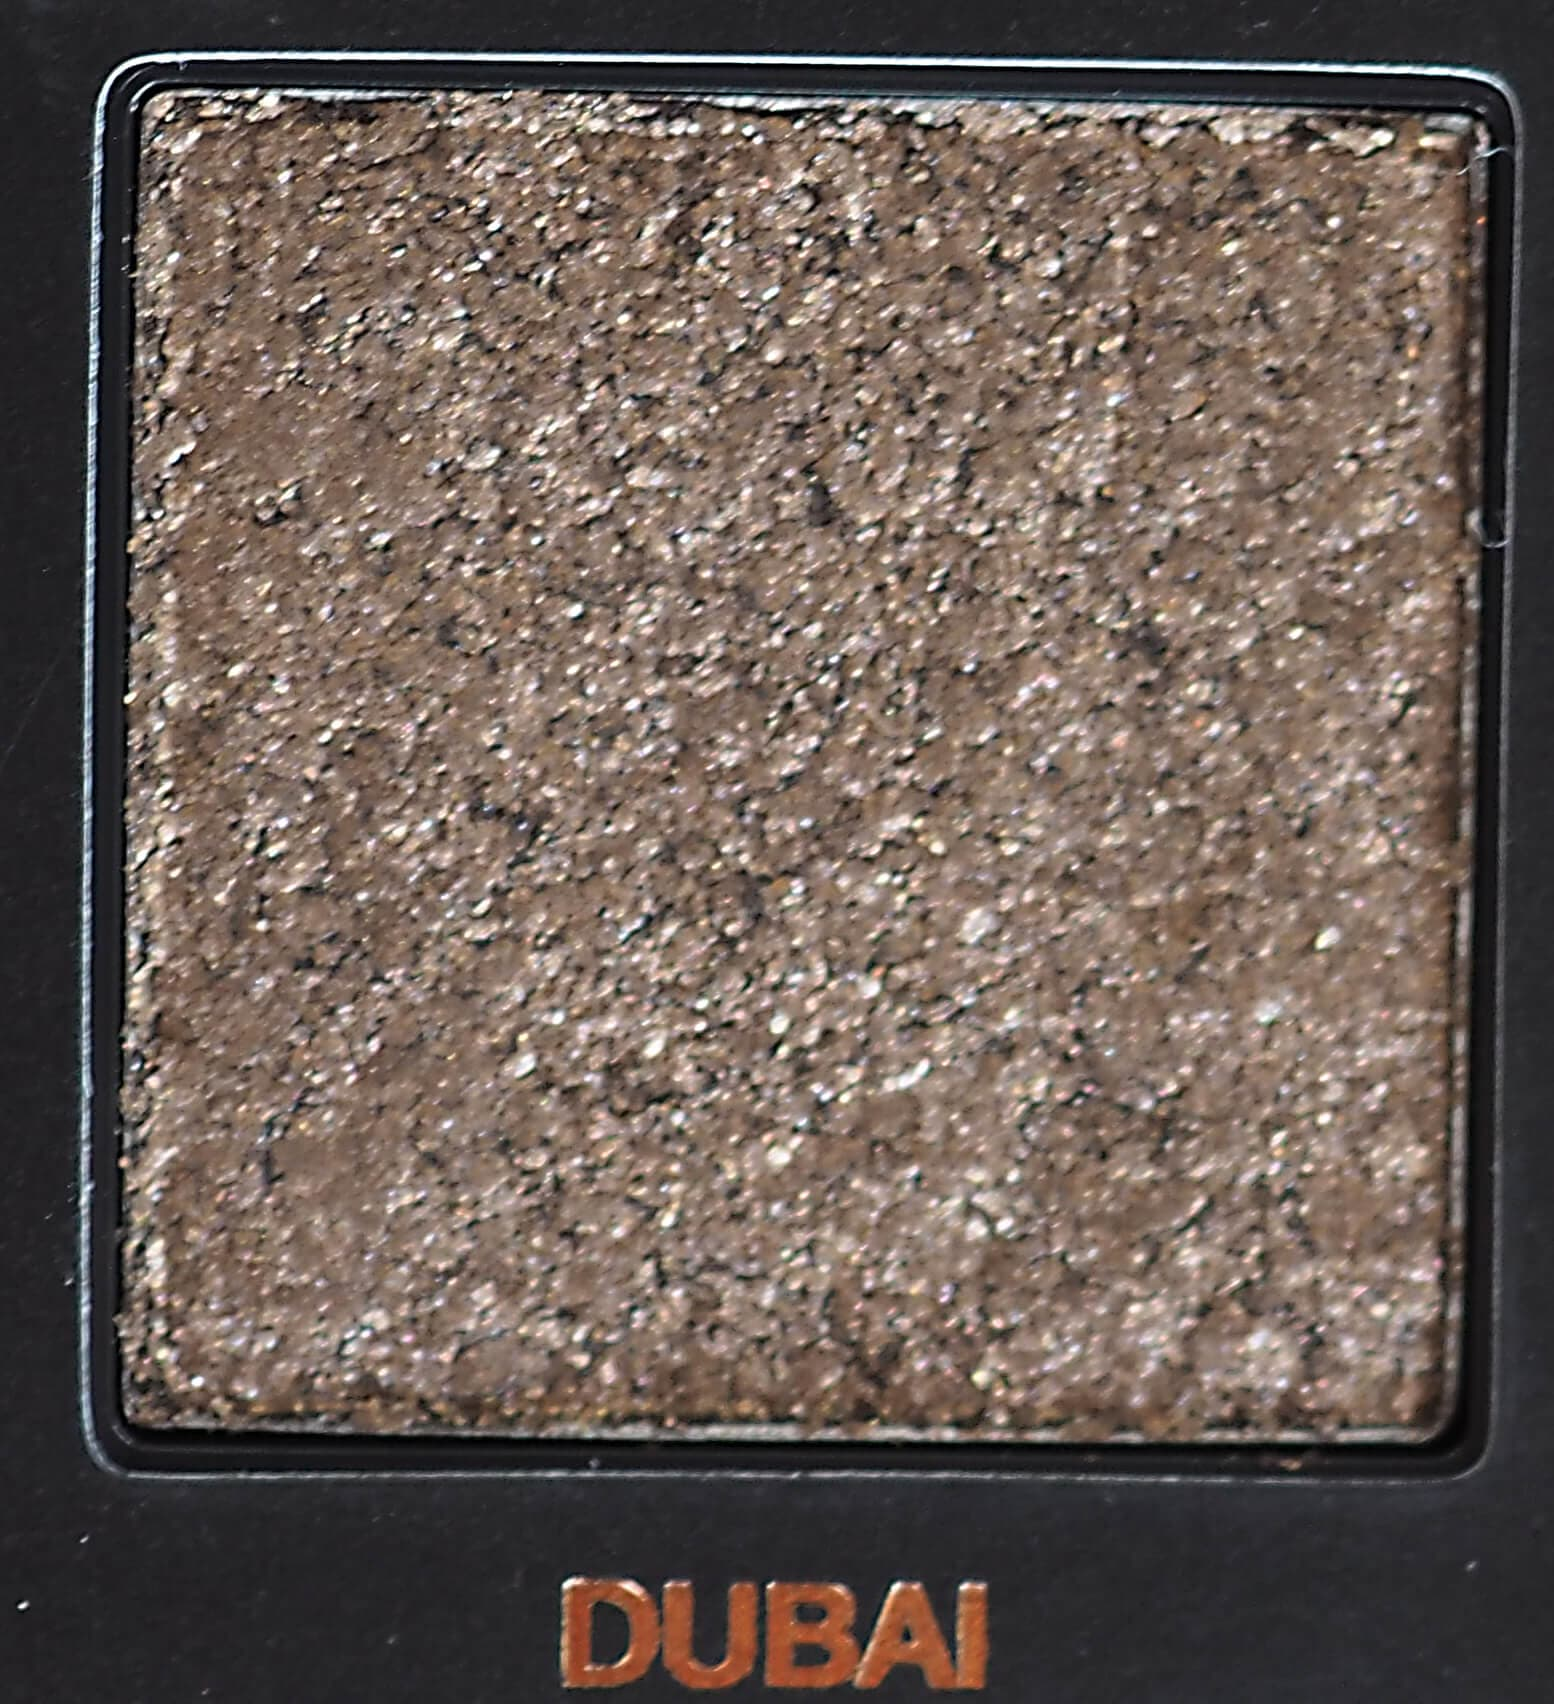 DUBAI HUDA ROSE GOLD EDITION